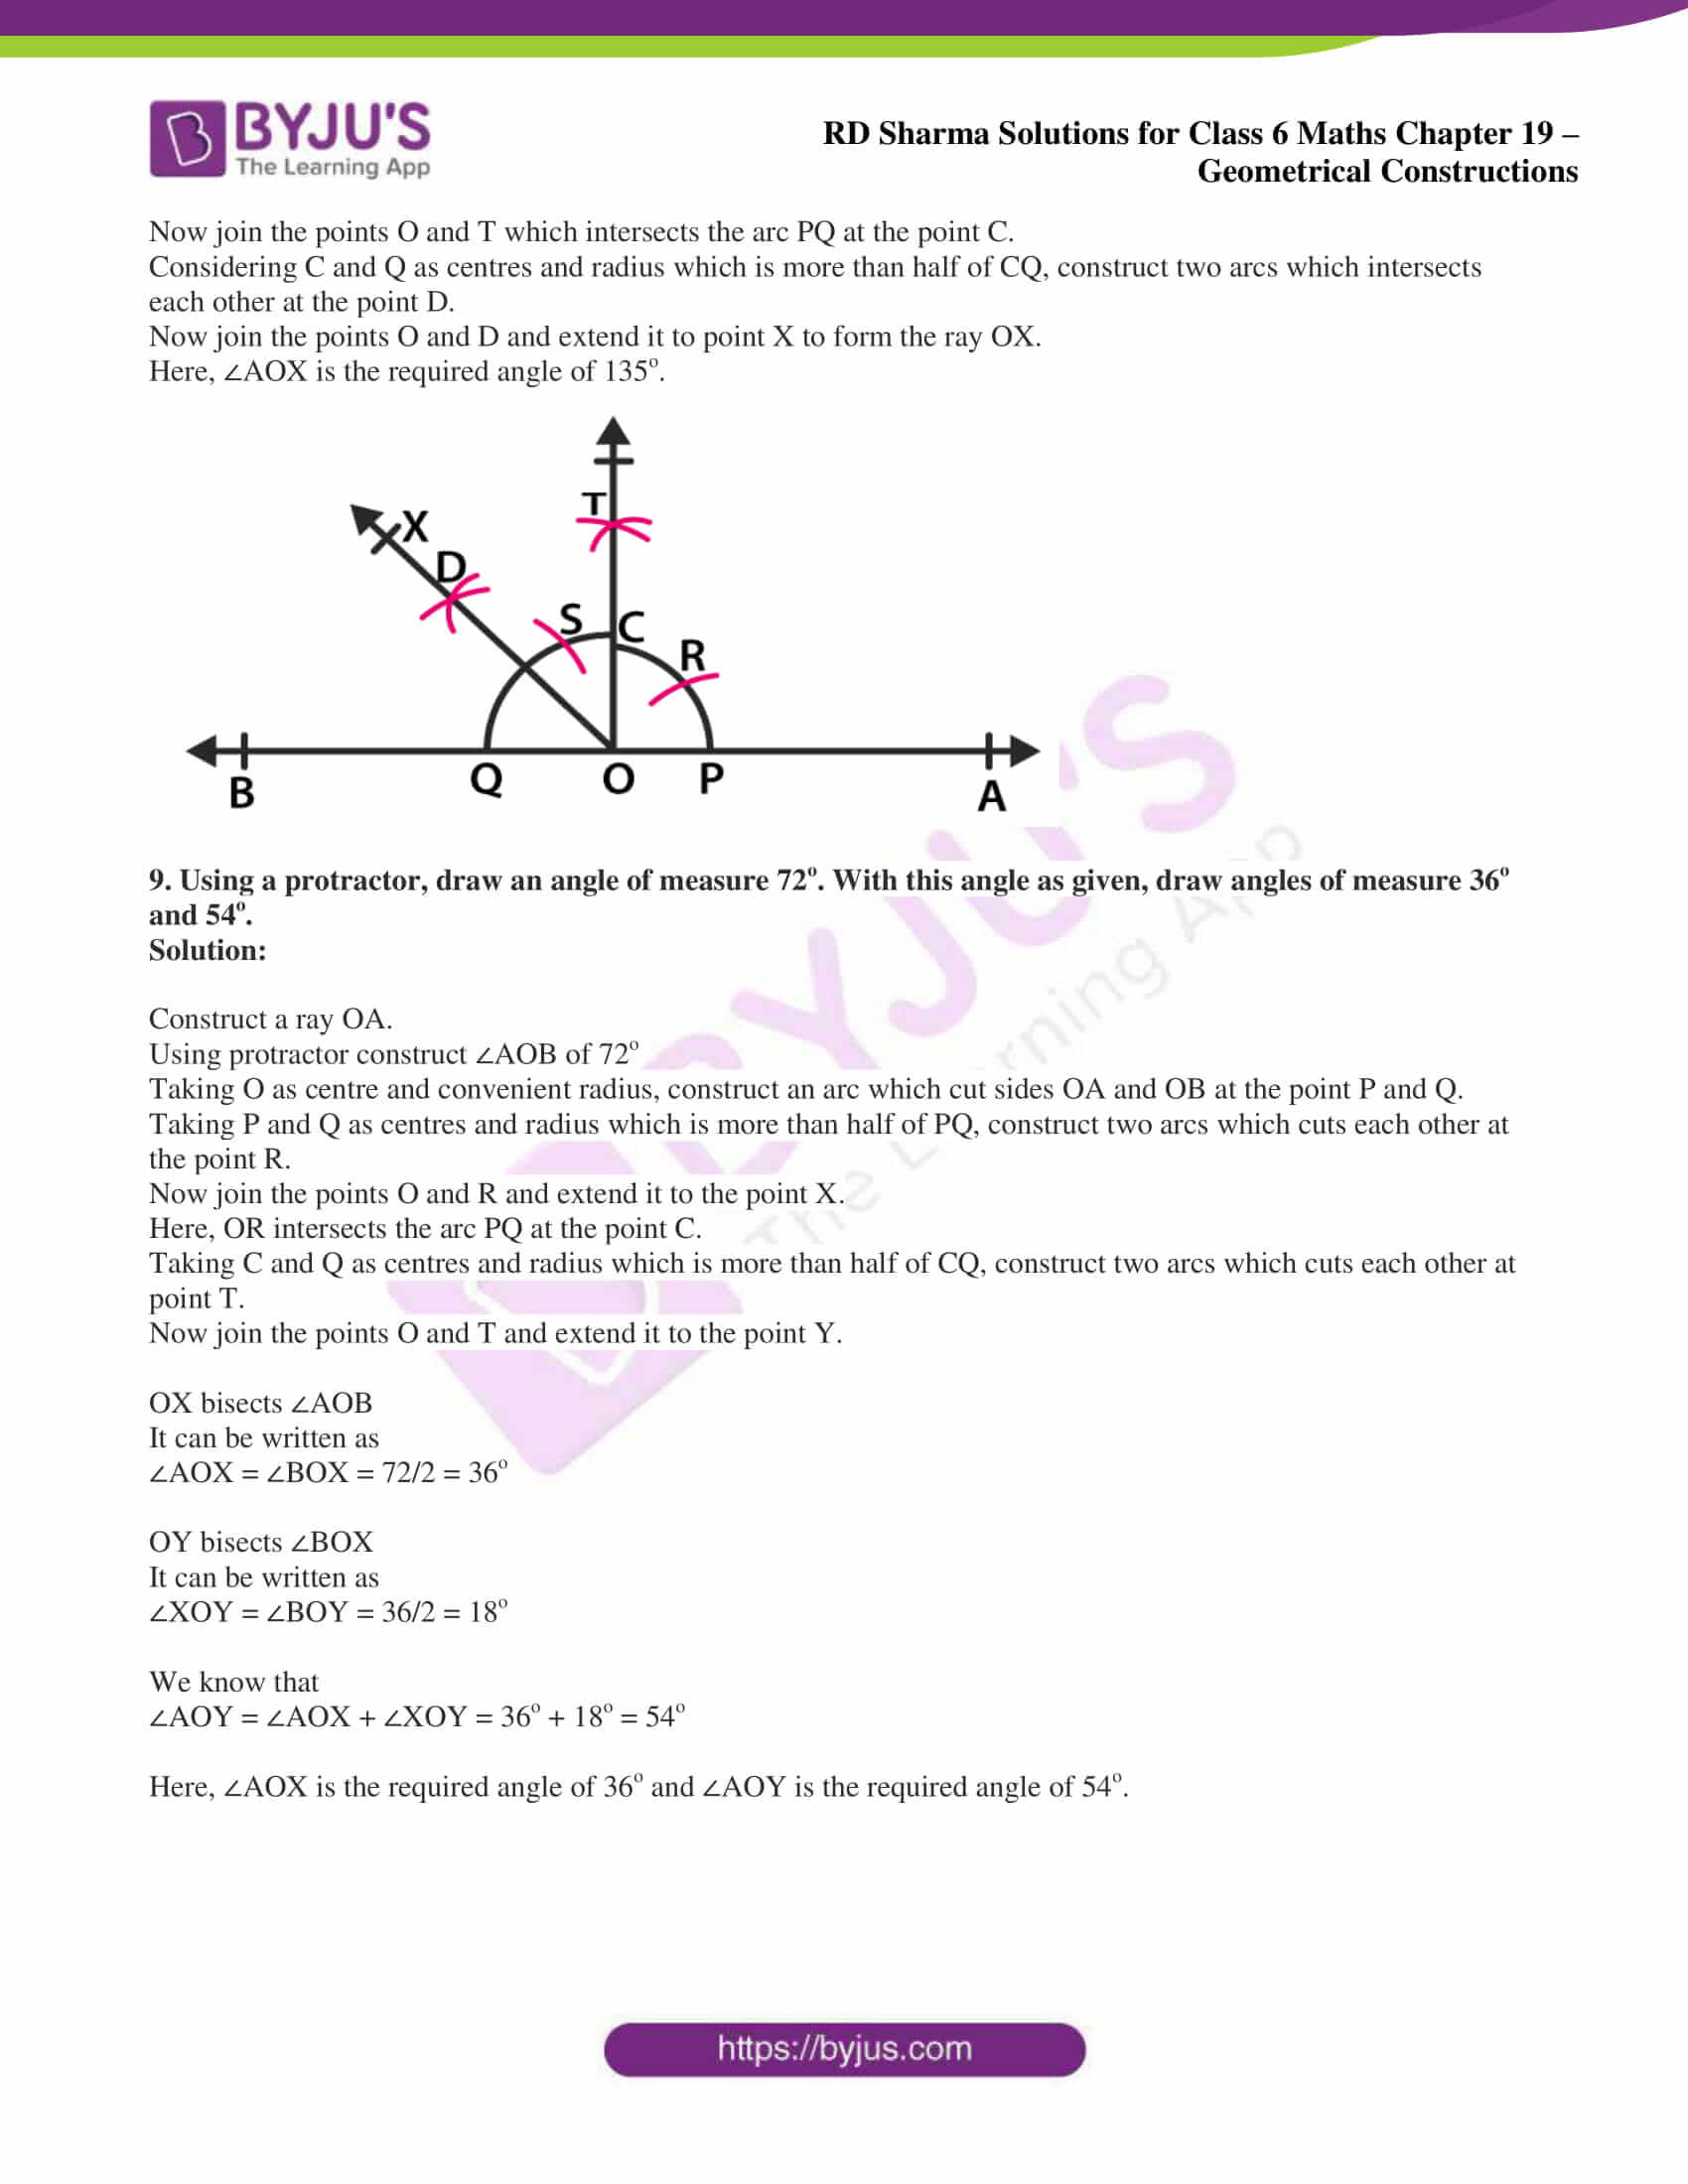 rd sharma solutions nov2020 class 6 maths chapter 19 exercise 5 5